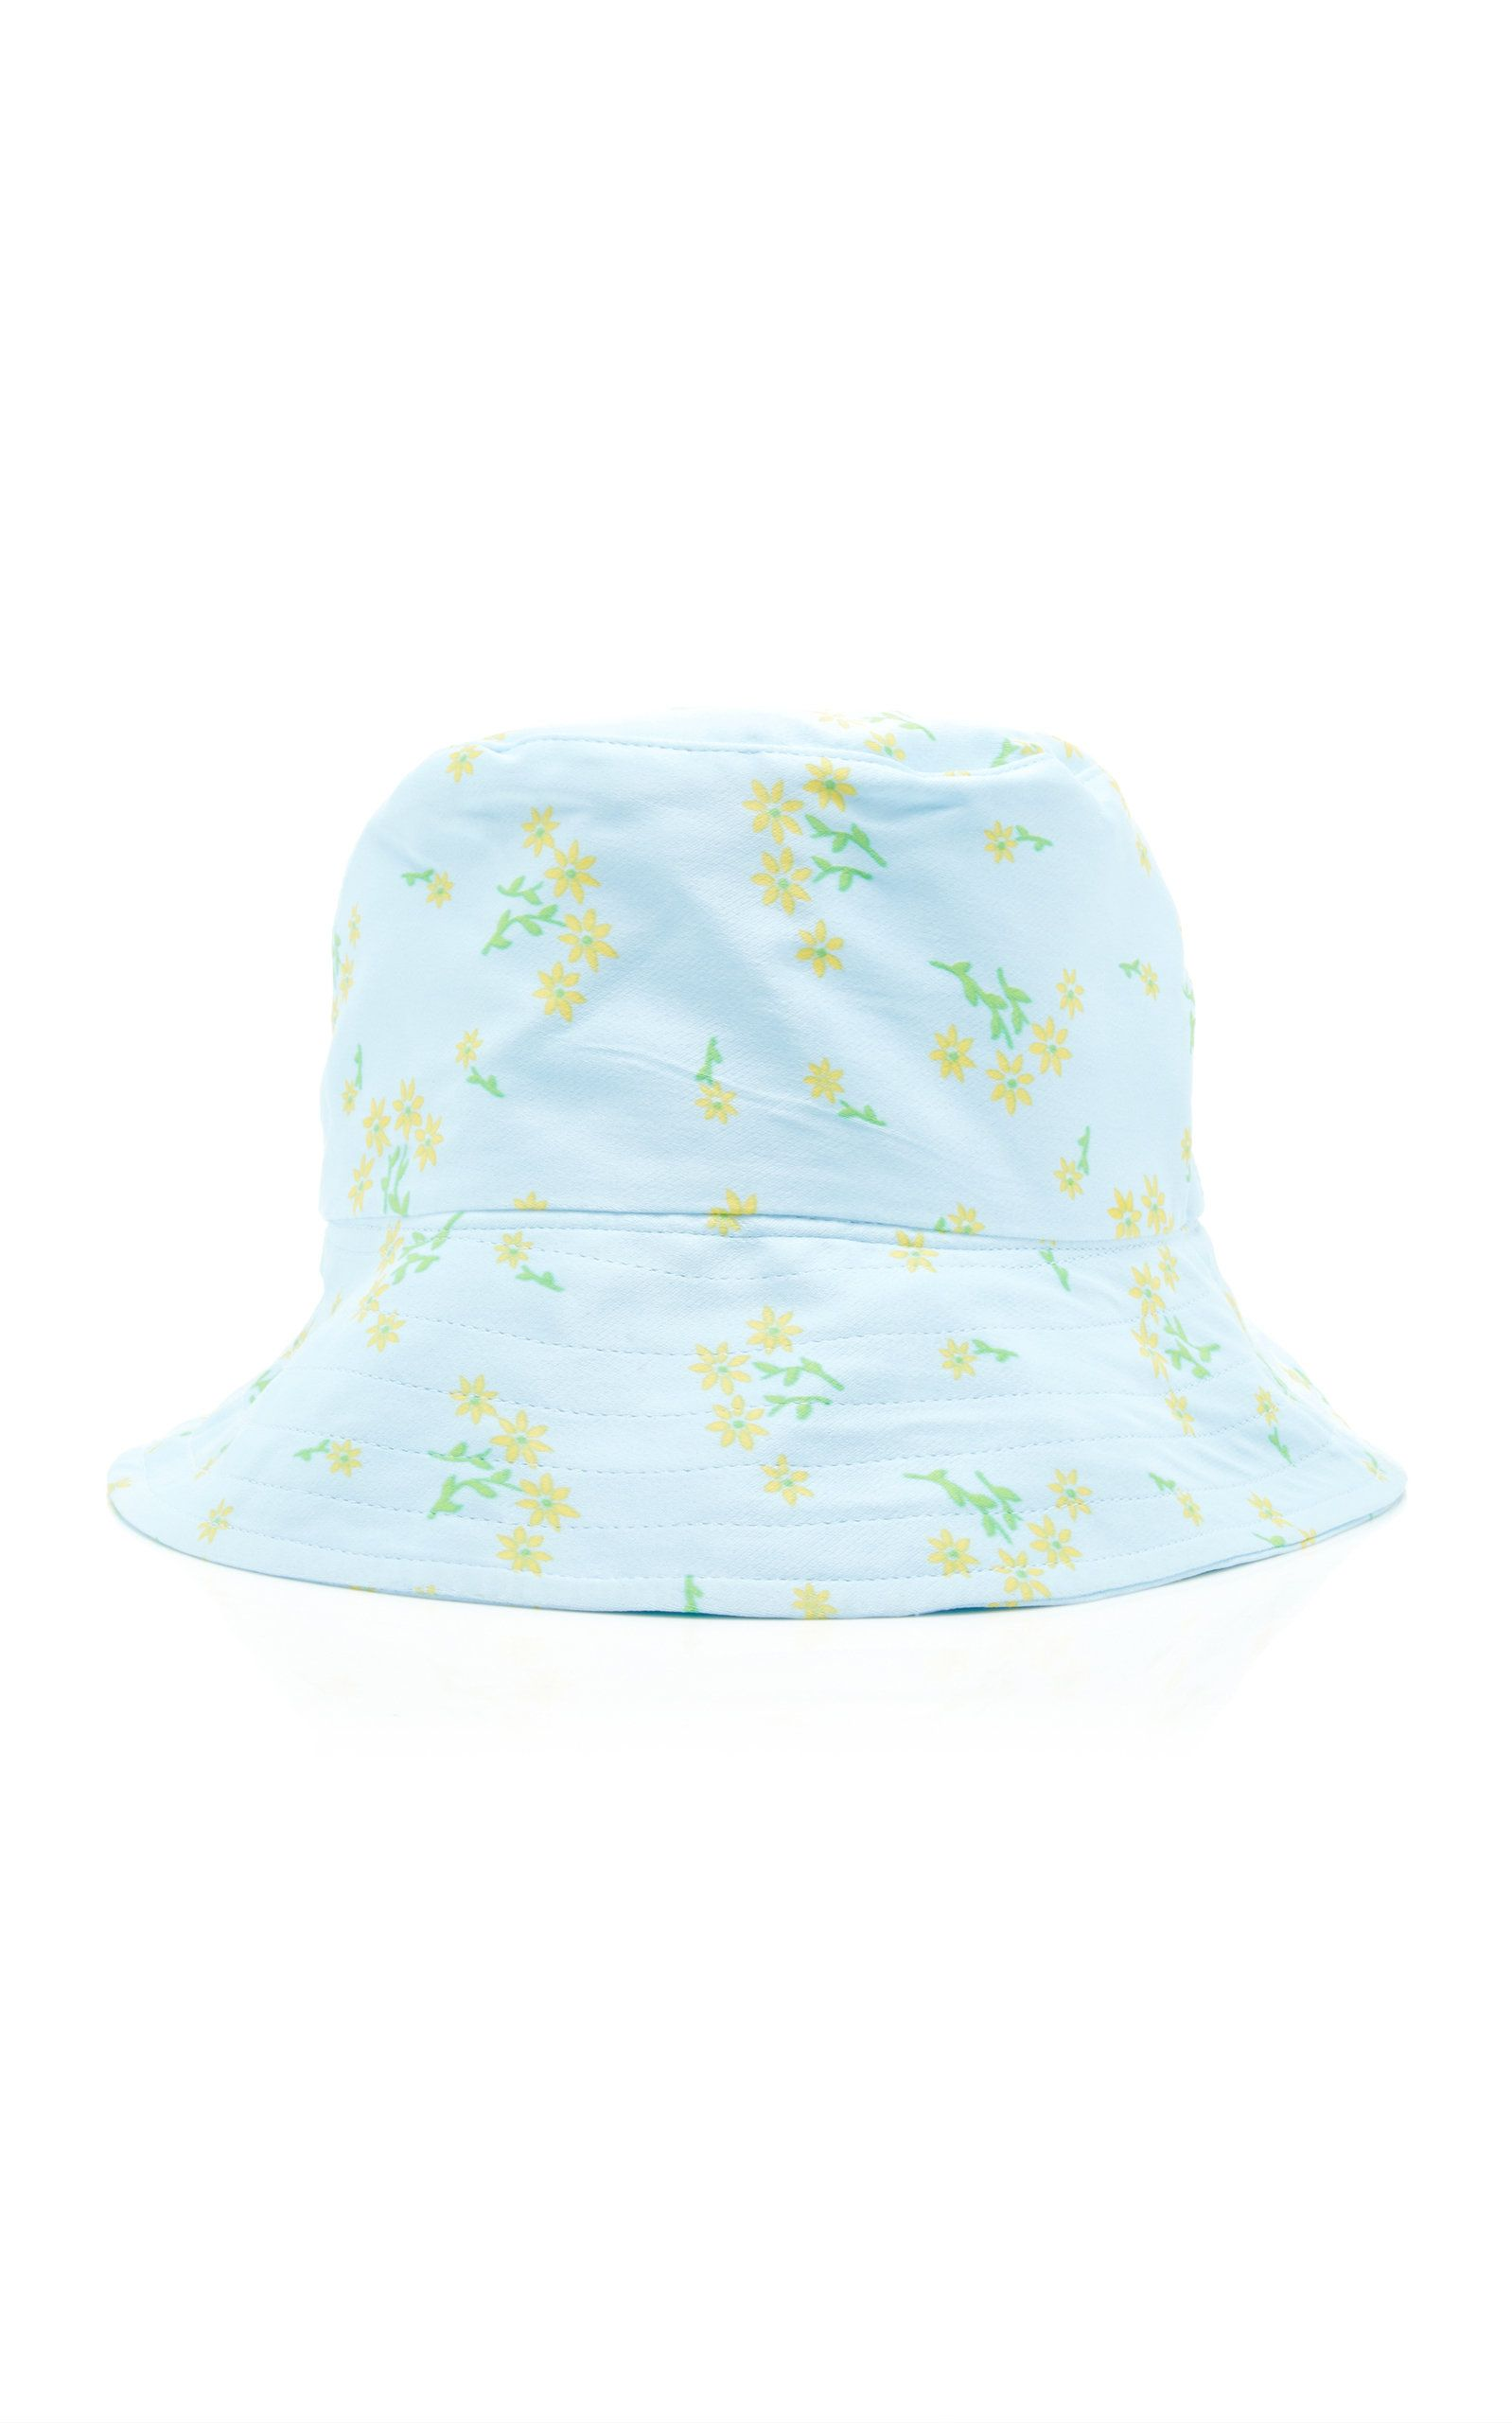 65a9e8678 Floral Bucket Hat in 2019   Products   Floral bucket hat, Bucket hat ...